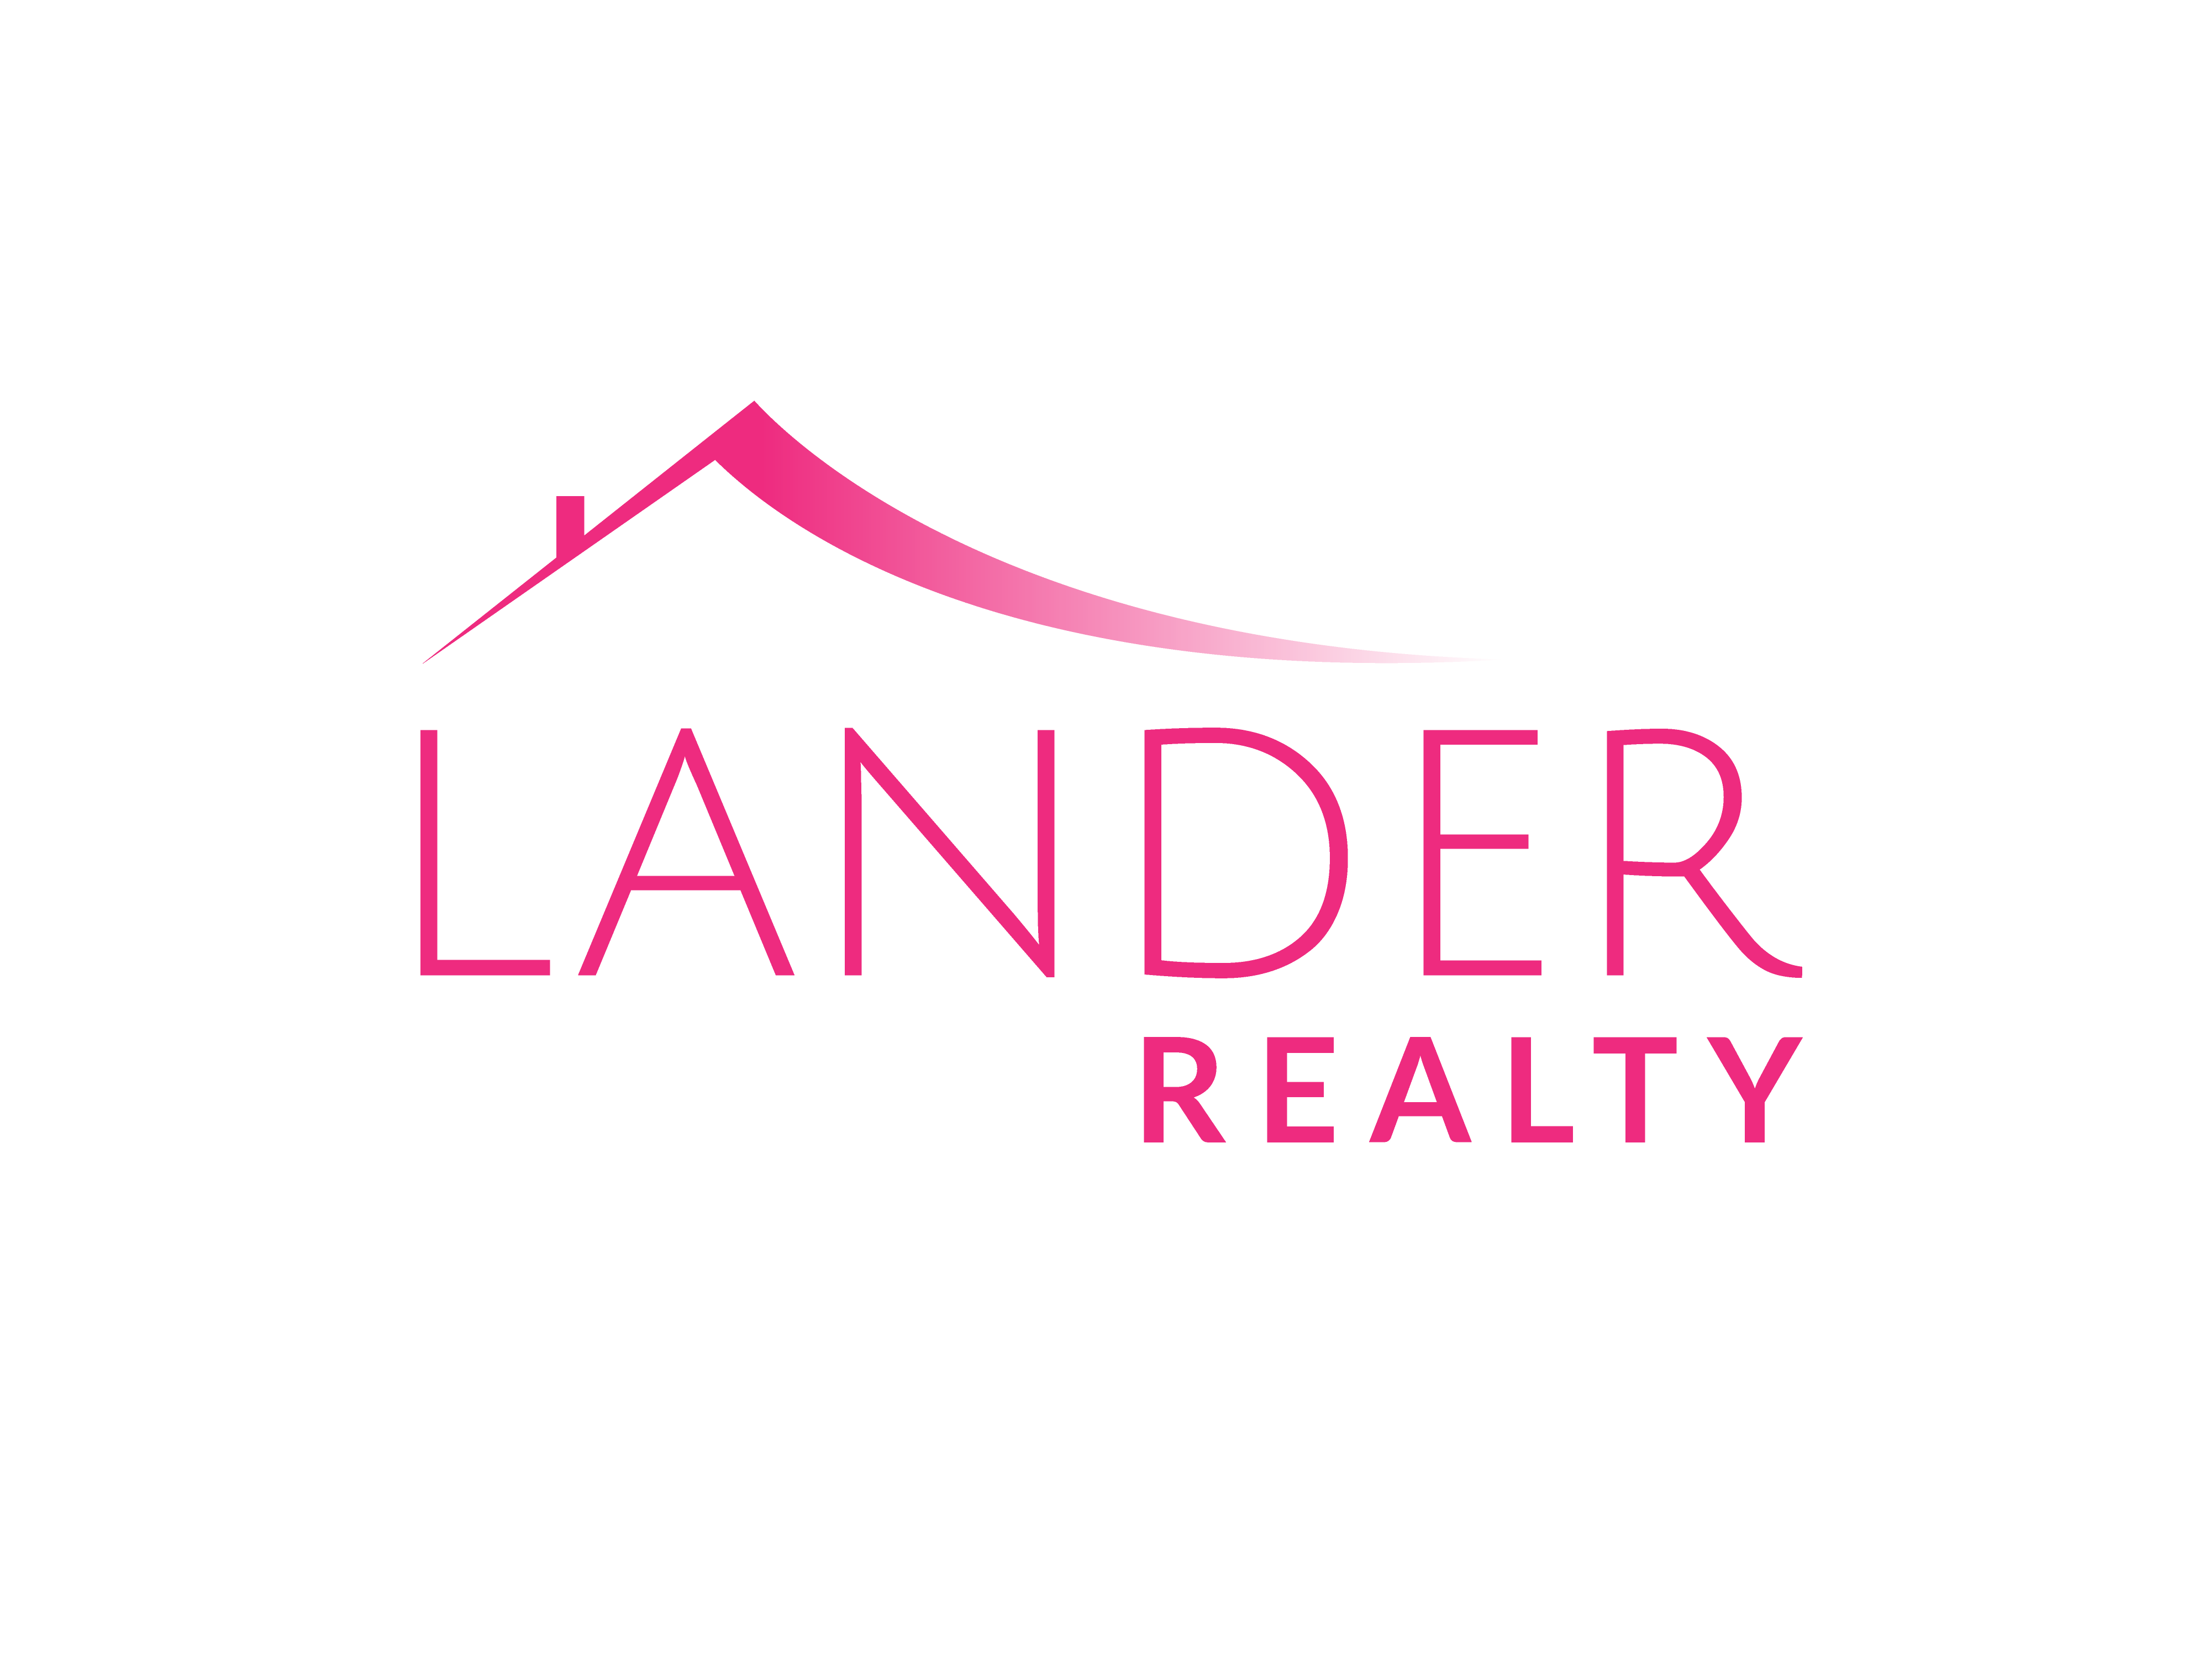 Pink logo for Lander Realty